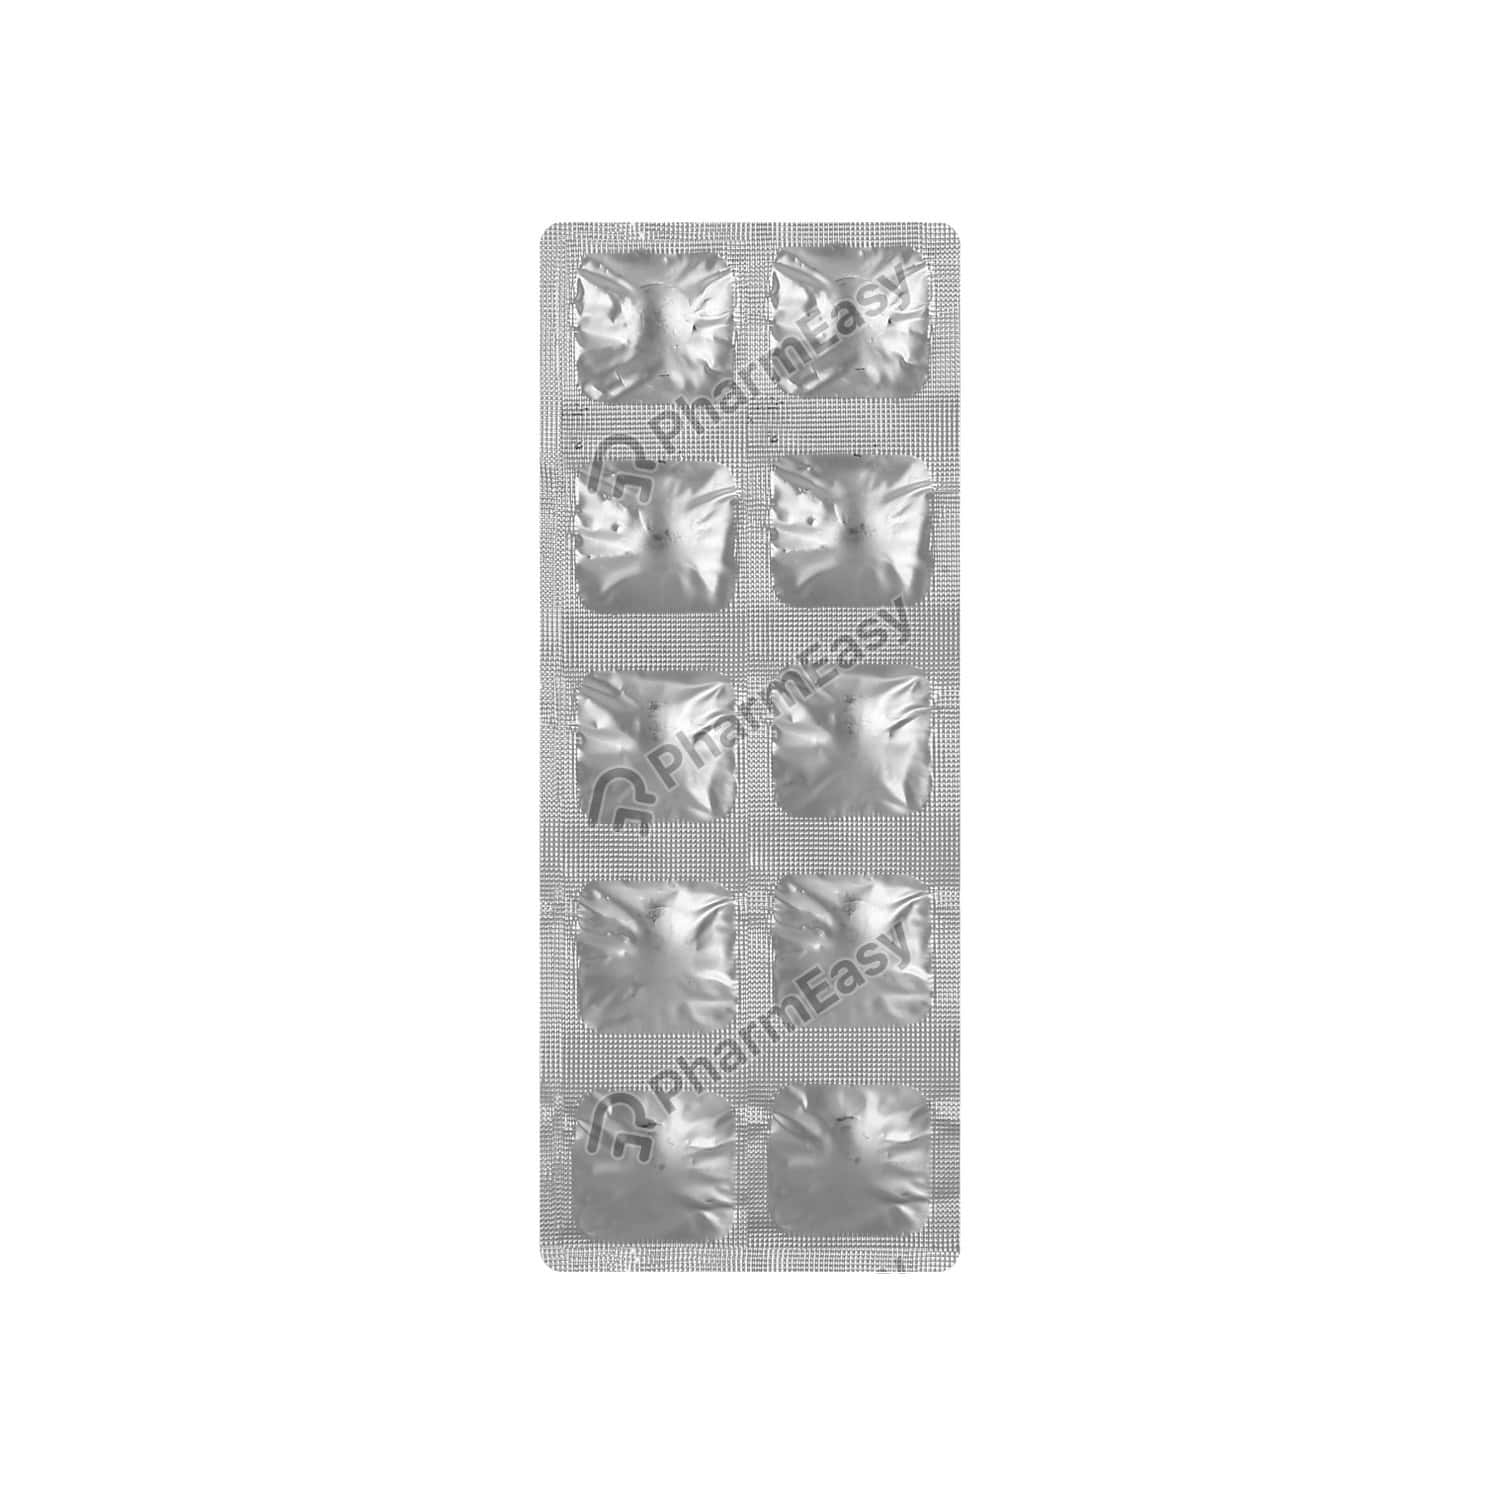 Olmat Ct 40mg Strip Of 10 Tablets